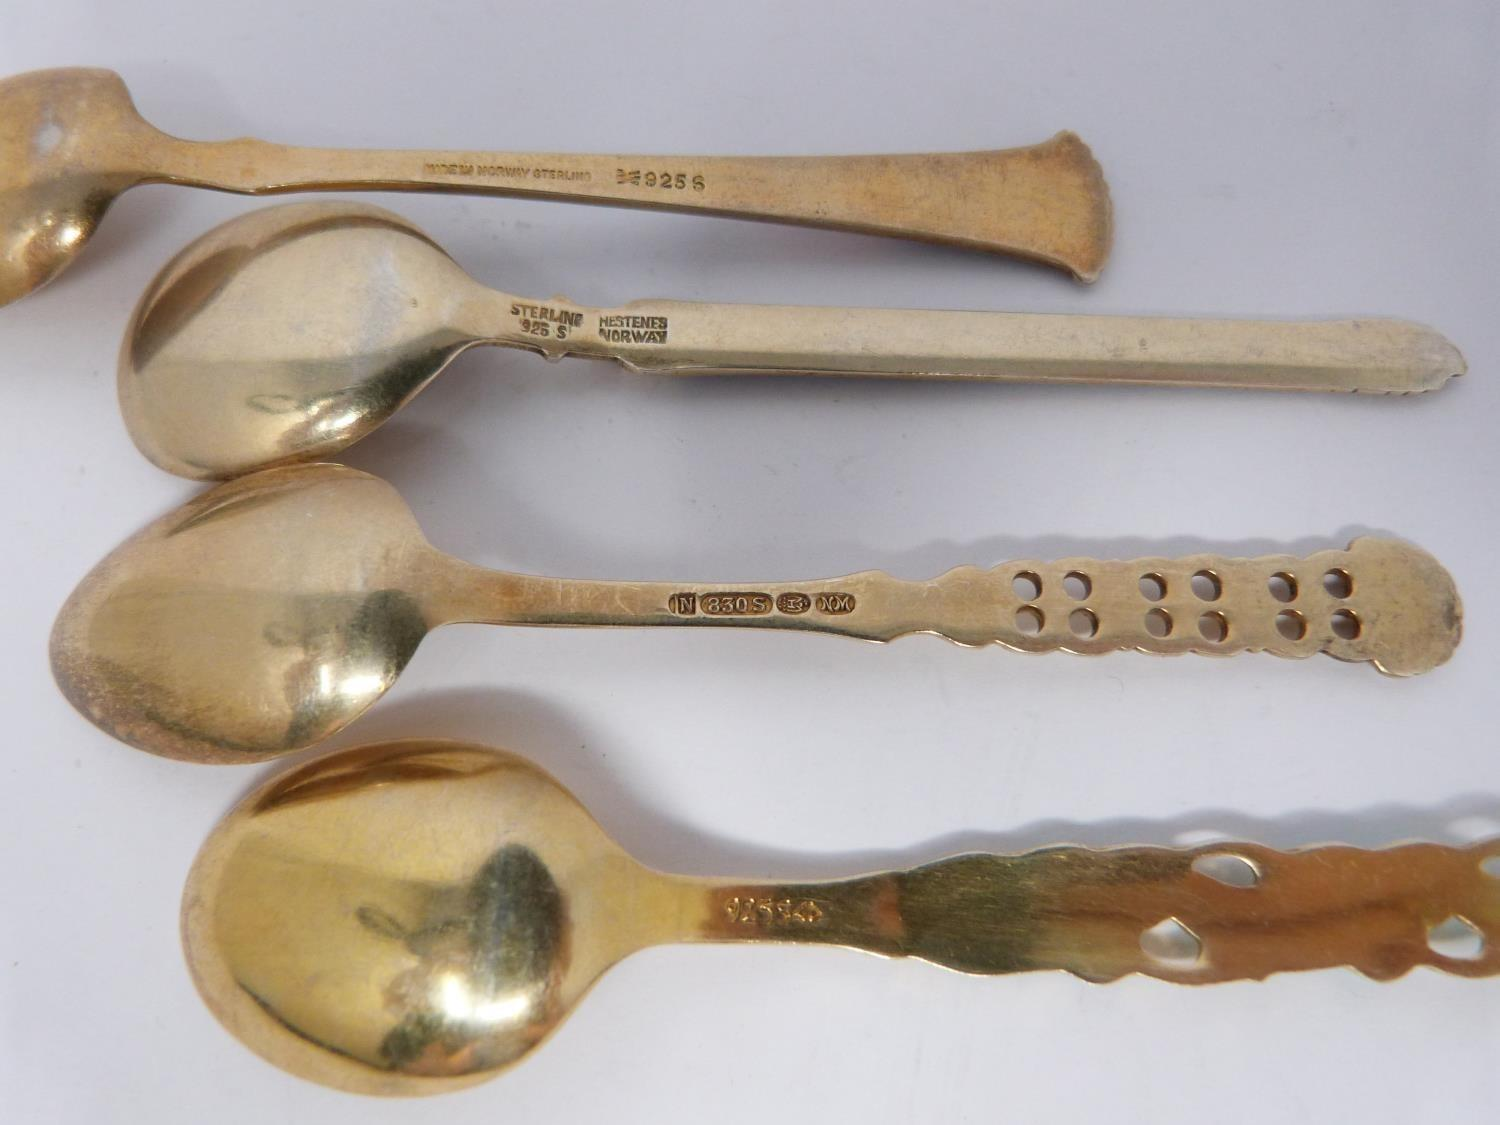 A collection of silver and enamel spoons, Norwegian and English, three spoons in a case, - Image 9 of 17